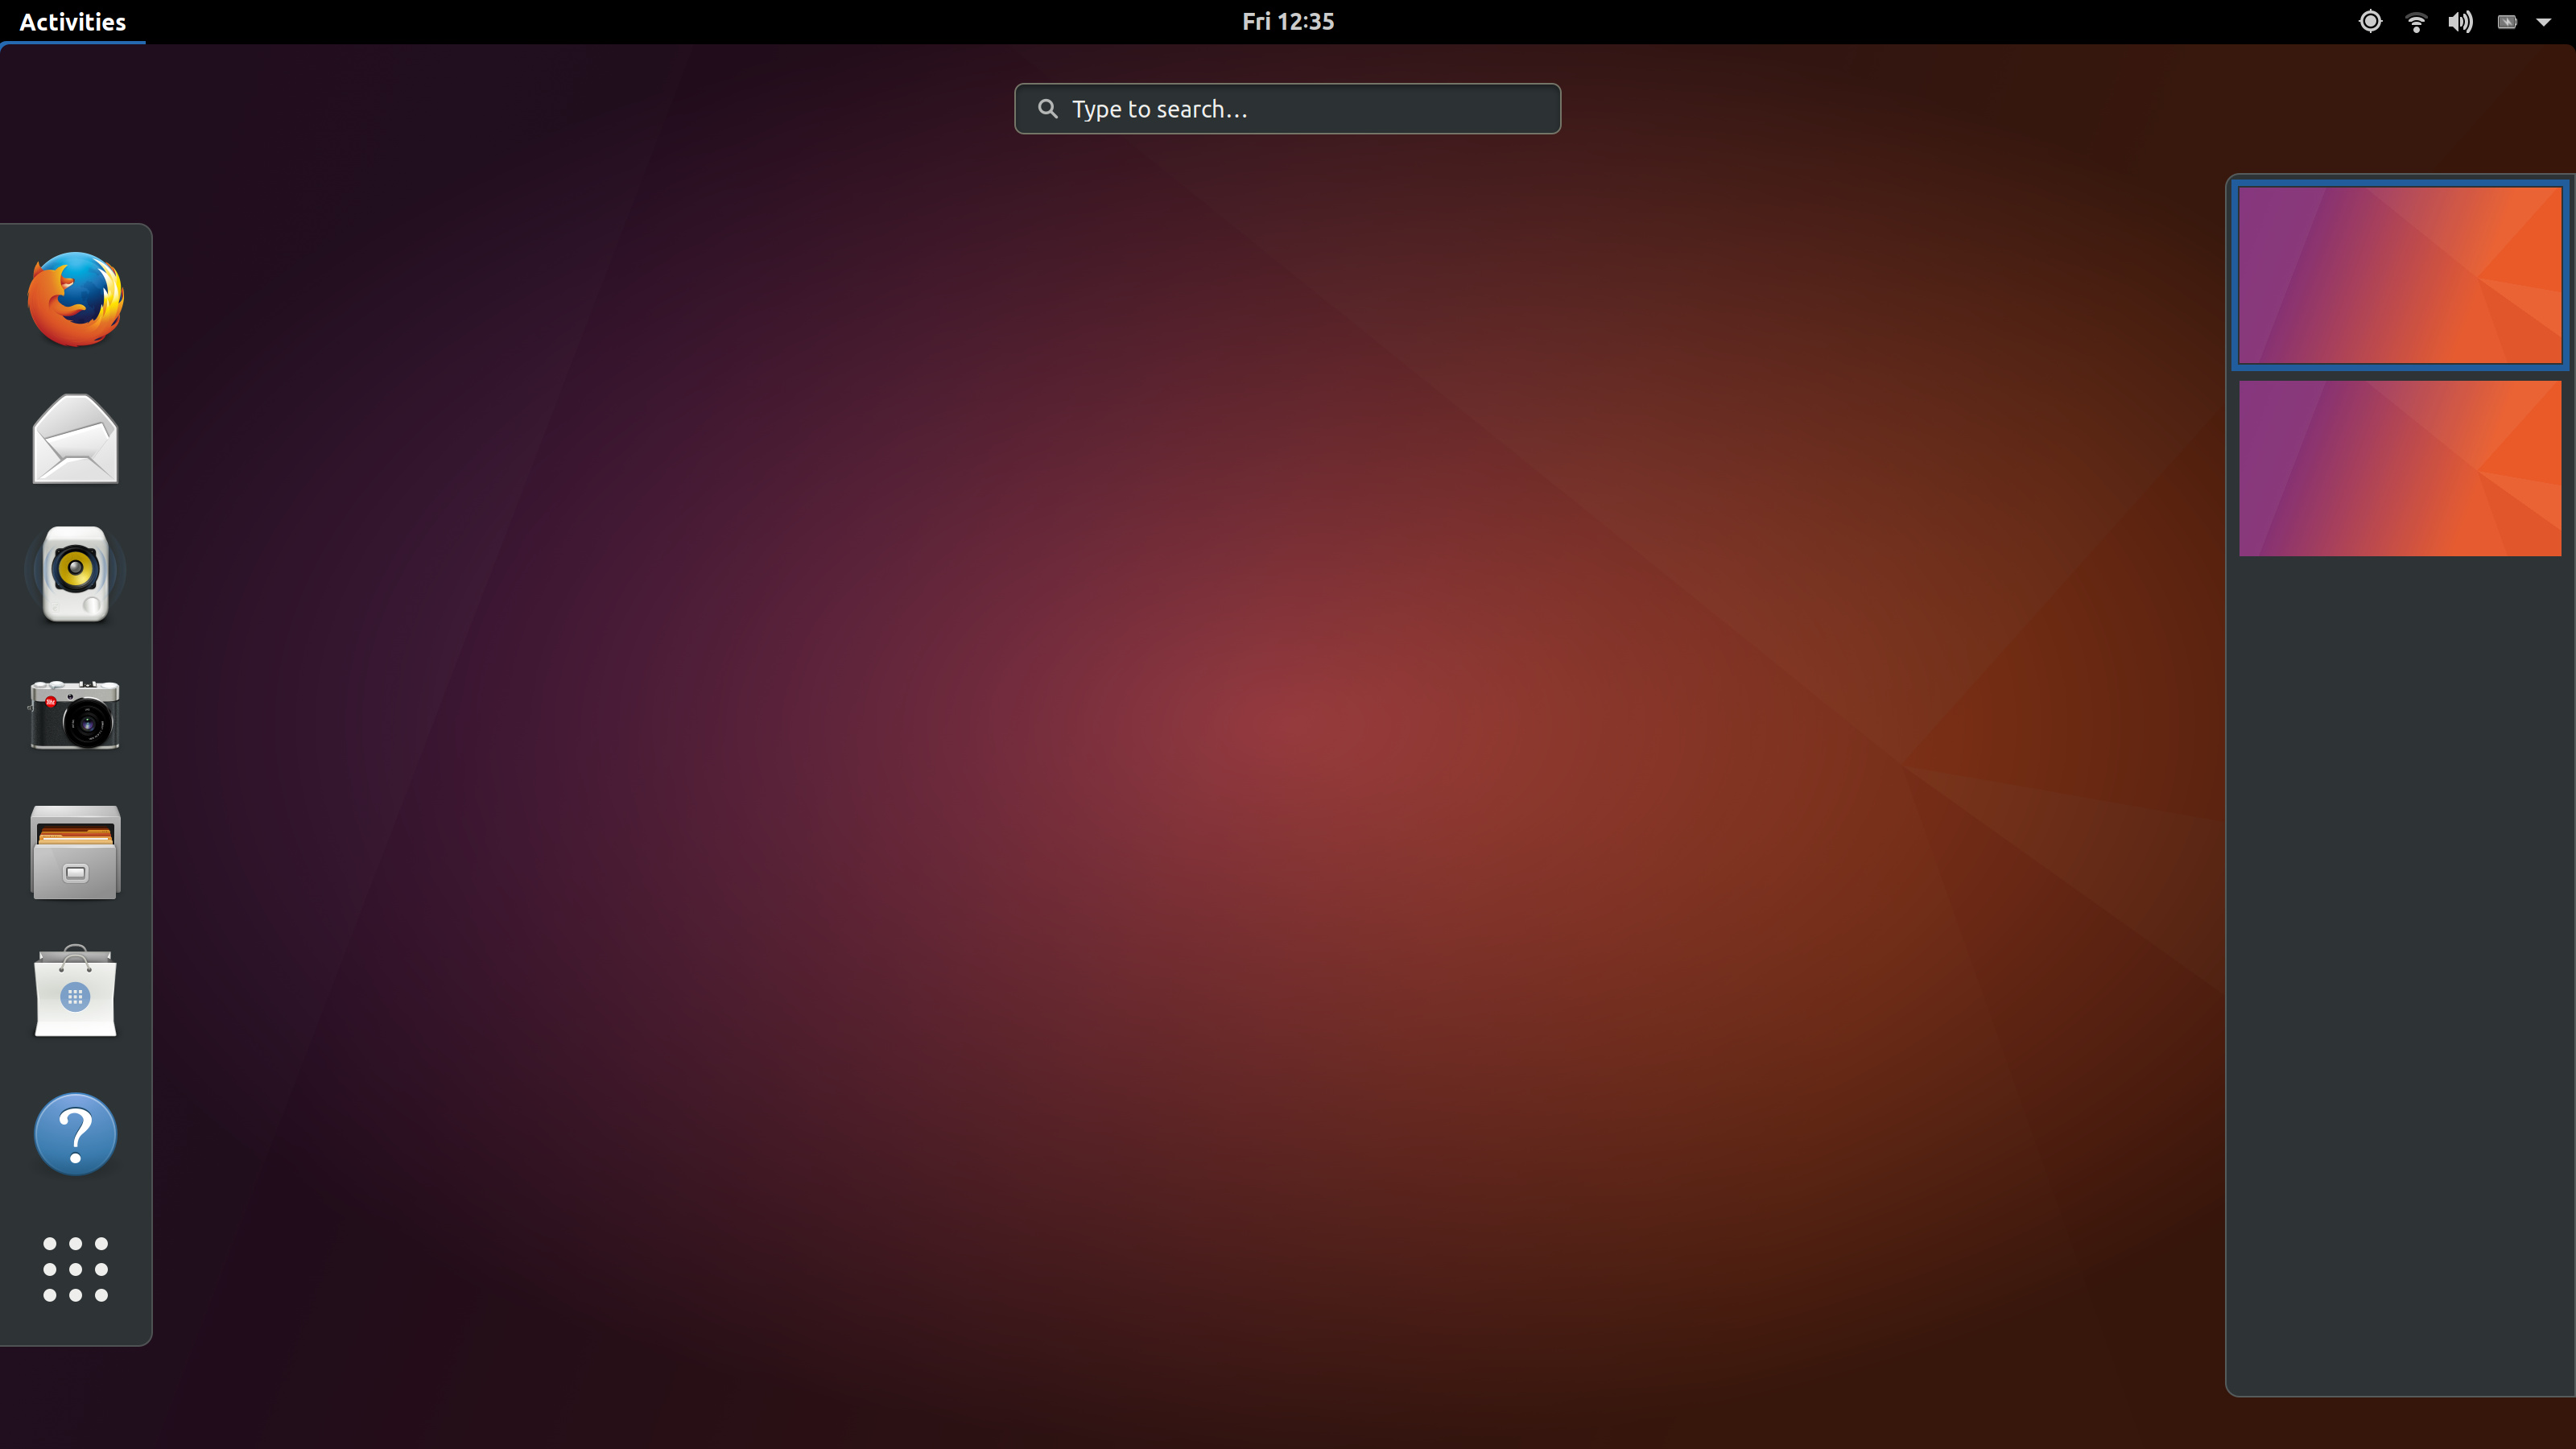 Canonical Works on Fixing GNOME Shell for Ambiance to Look Good on